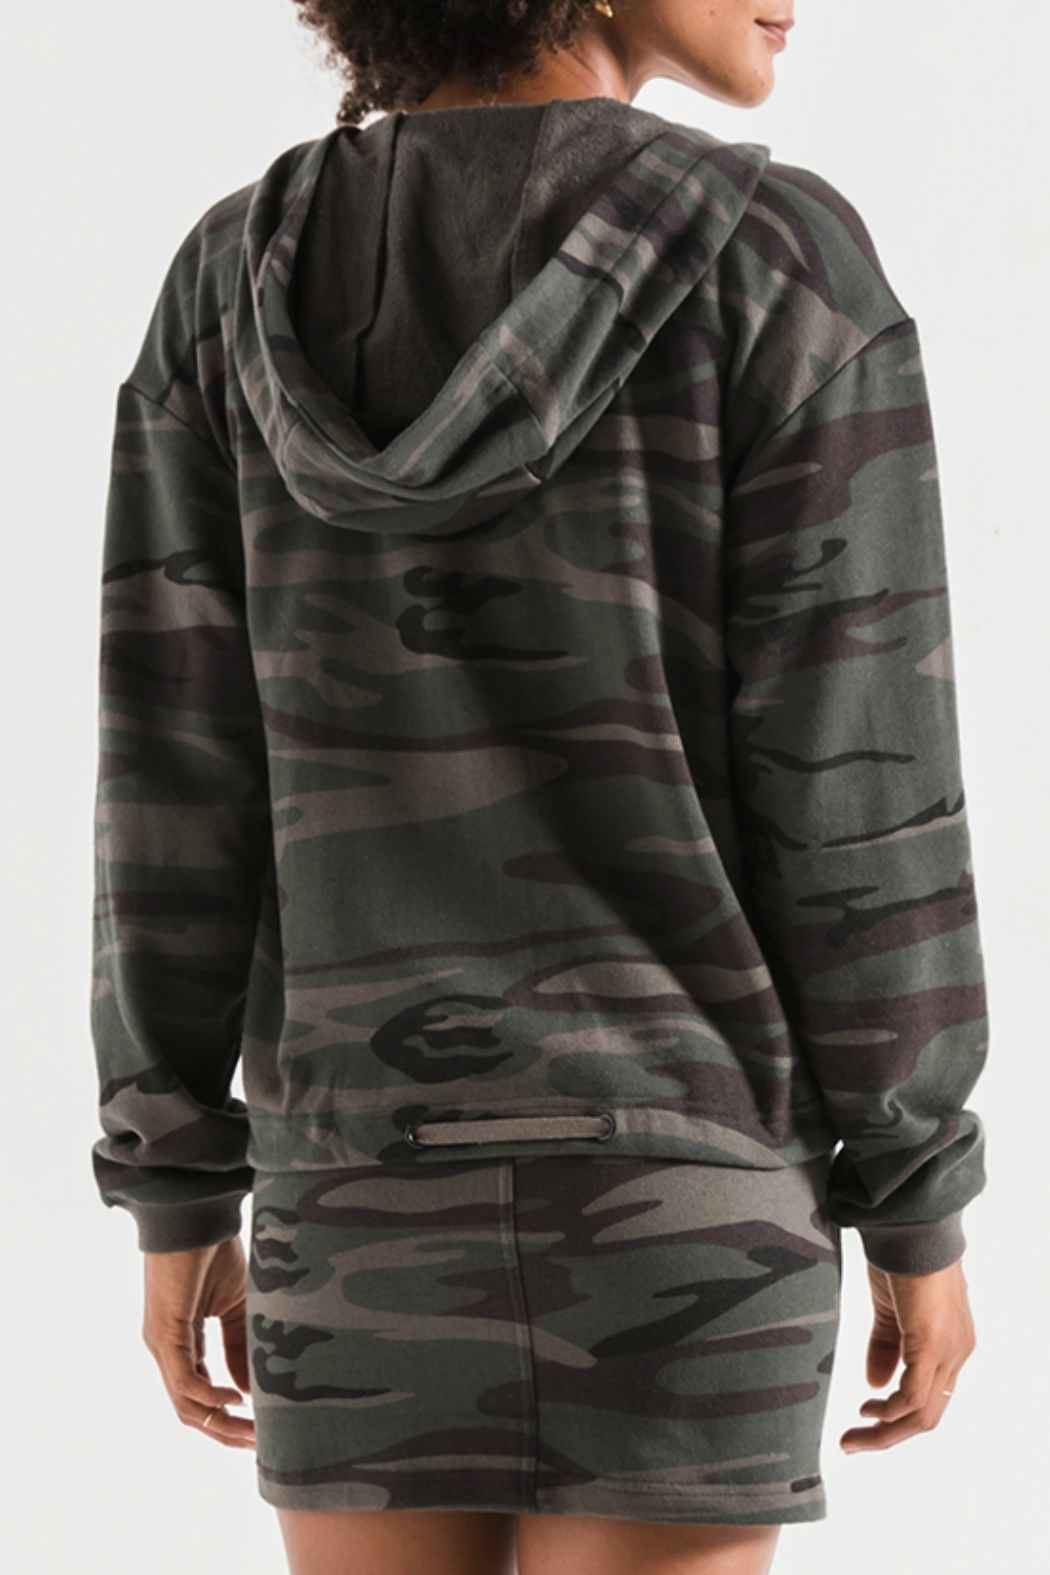 z supply Camo Knit Hooded Jacket - Side Cropped Image